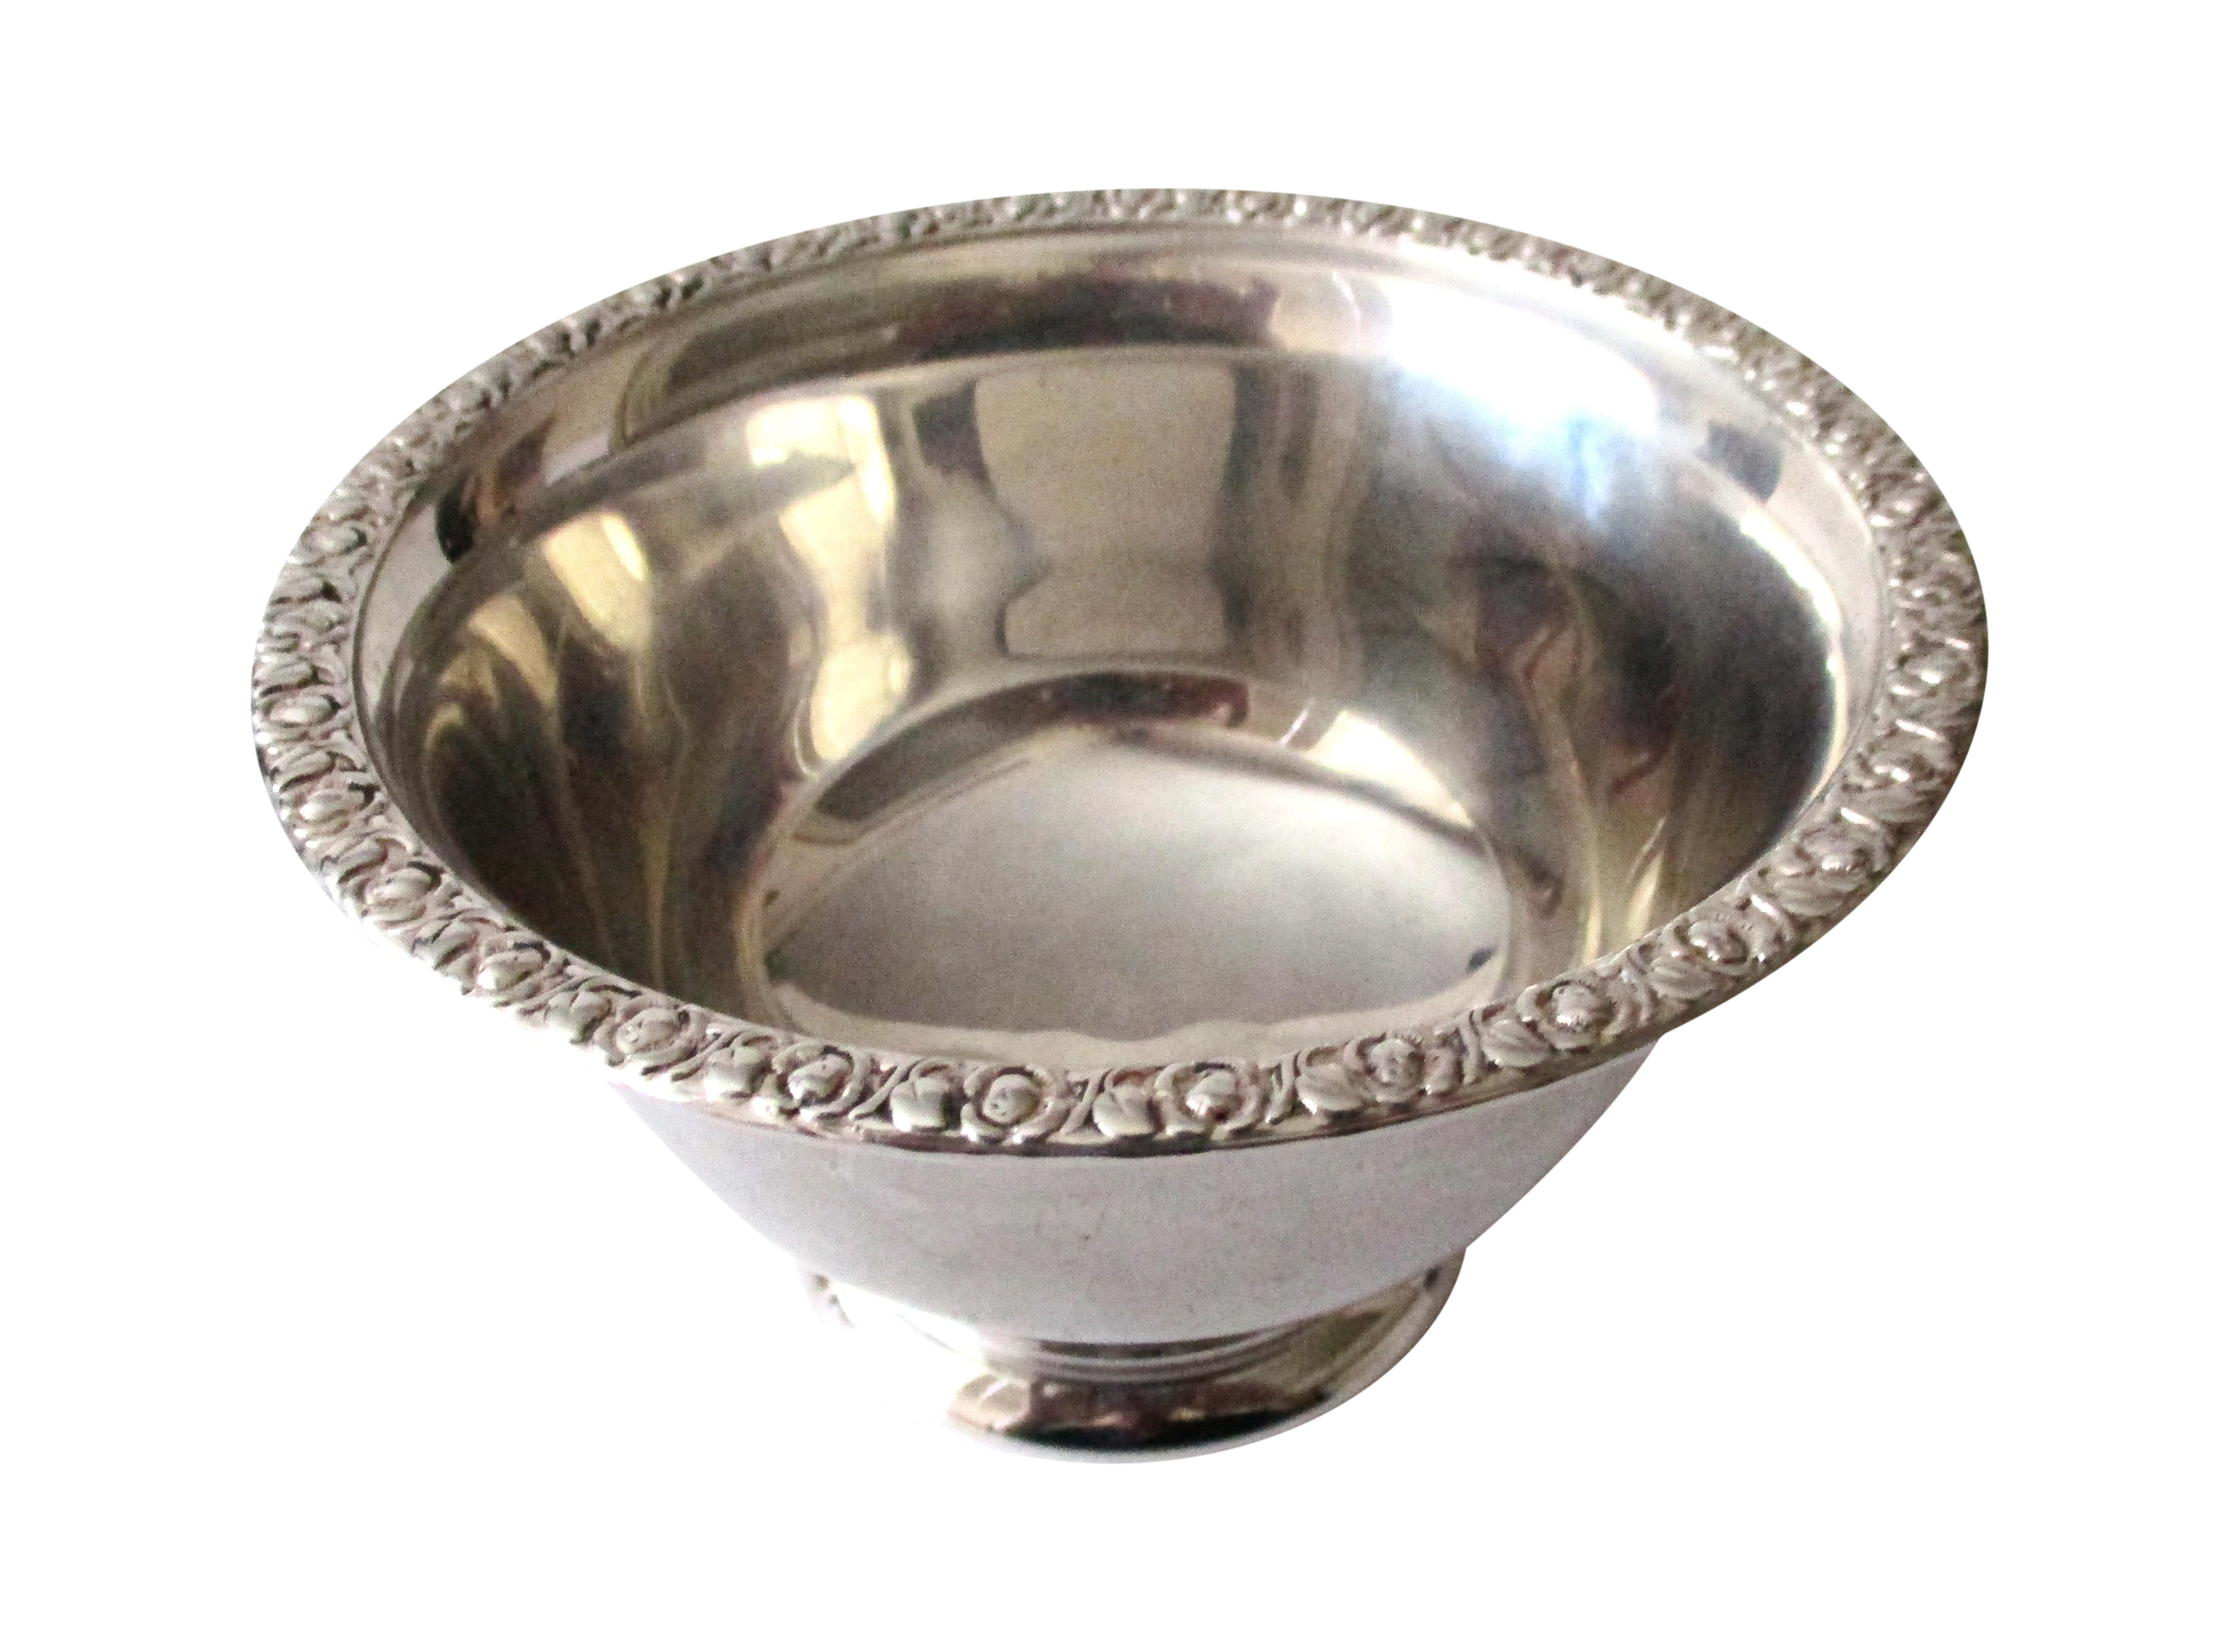 Transparent bowl silver. F b rogers co